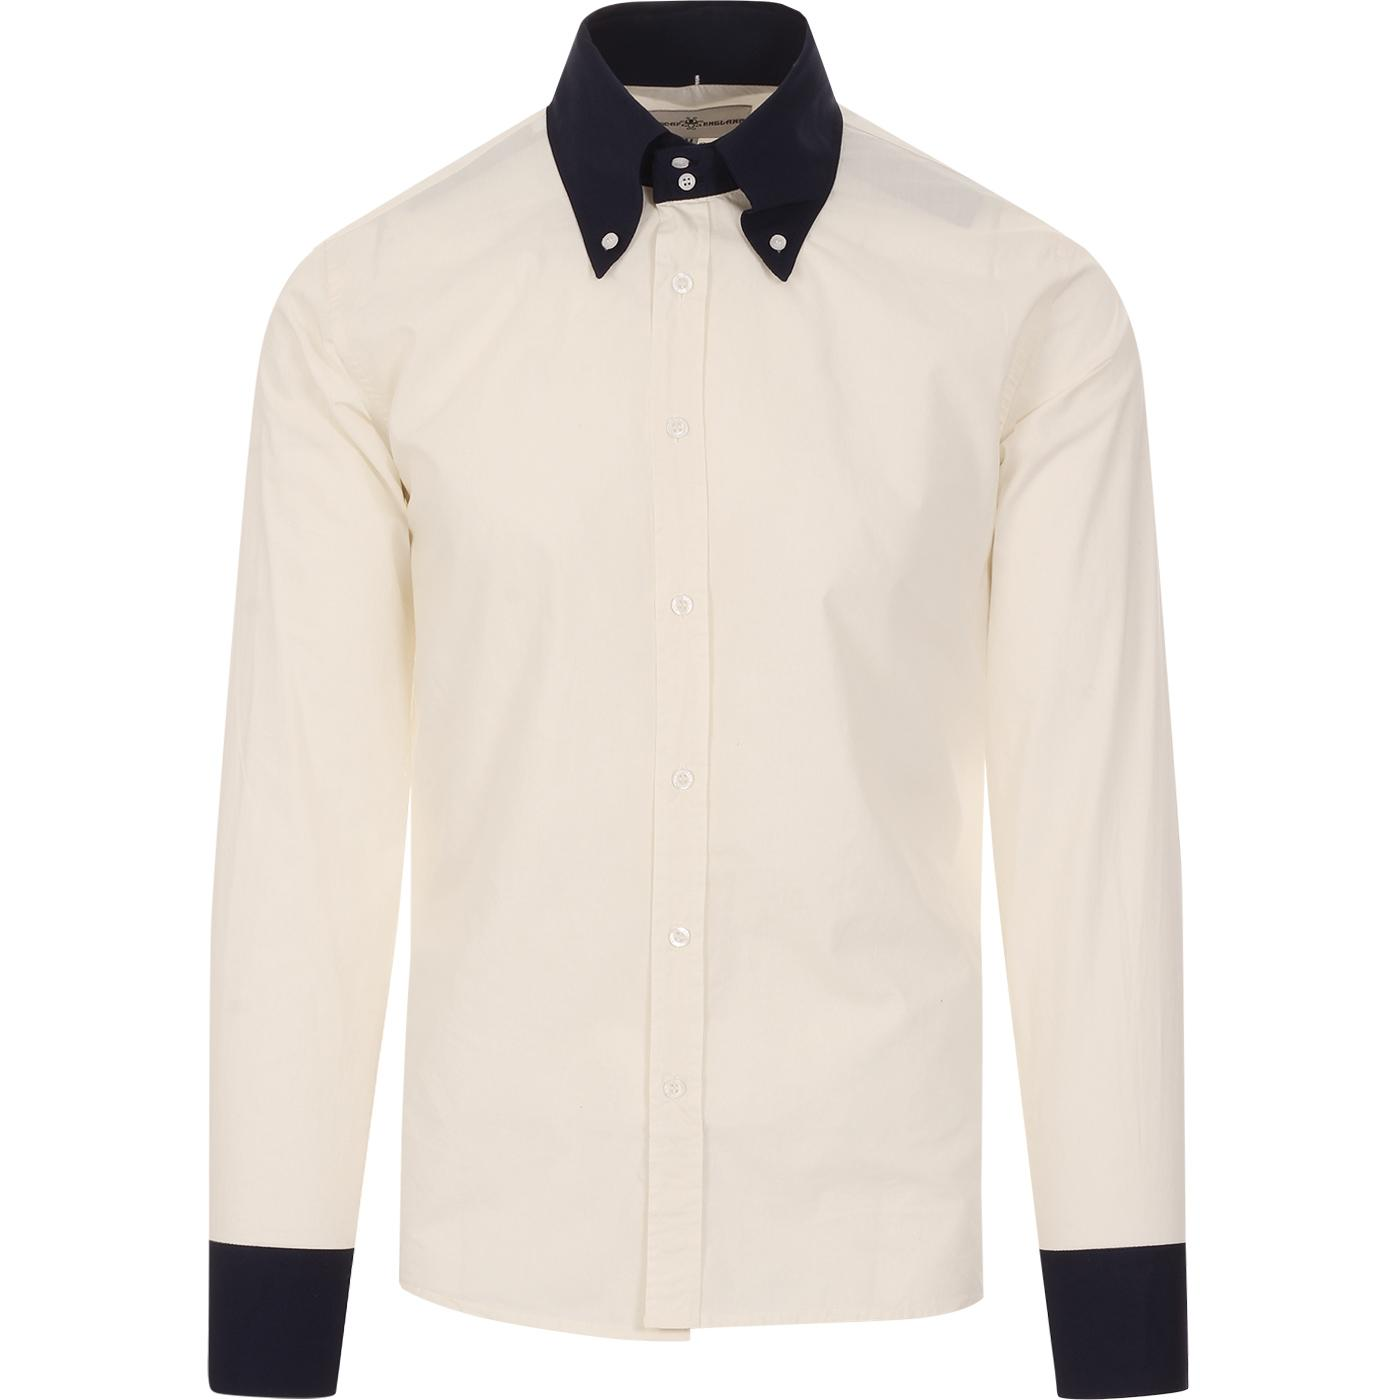 madcap england mens two tone contrast collar nad cuffs long sleeve shirt off white navy